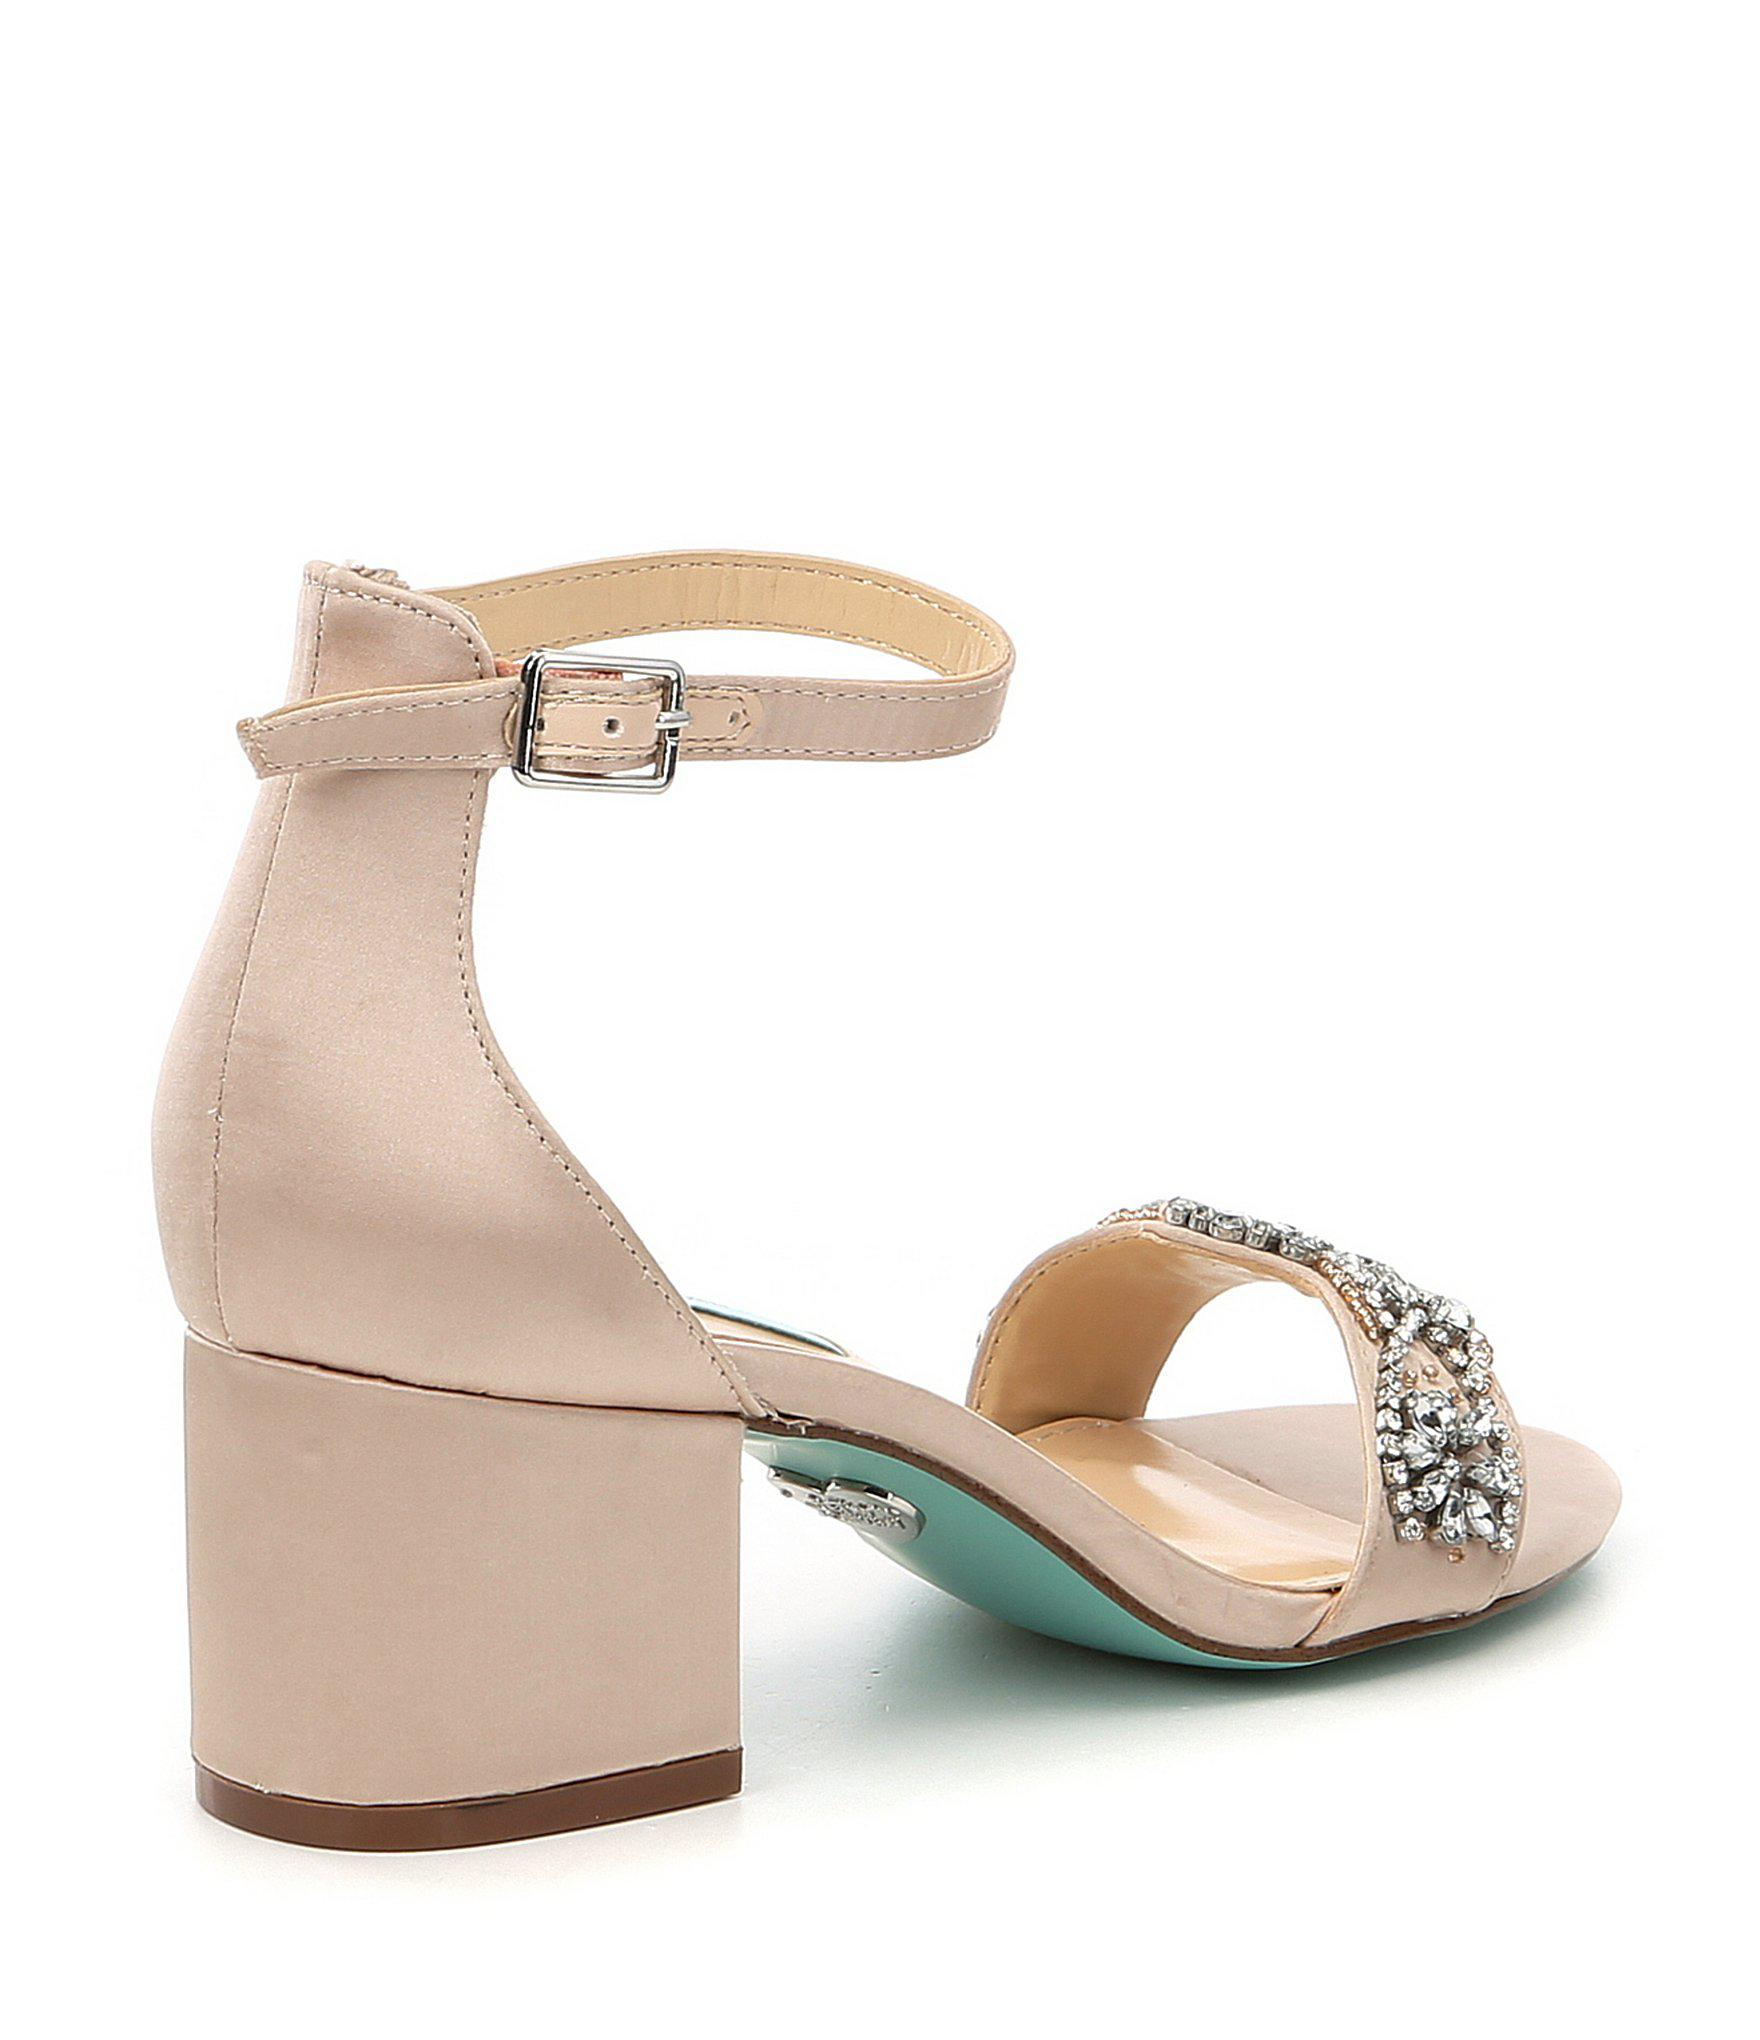 0eb51d9c7241 Betsey Johnson - Multicolor Blue By Mel Bejeweled Satin Block Heel Dress  Sandals - Lyst. View fullscreen